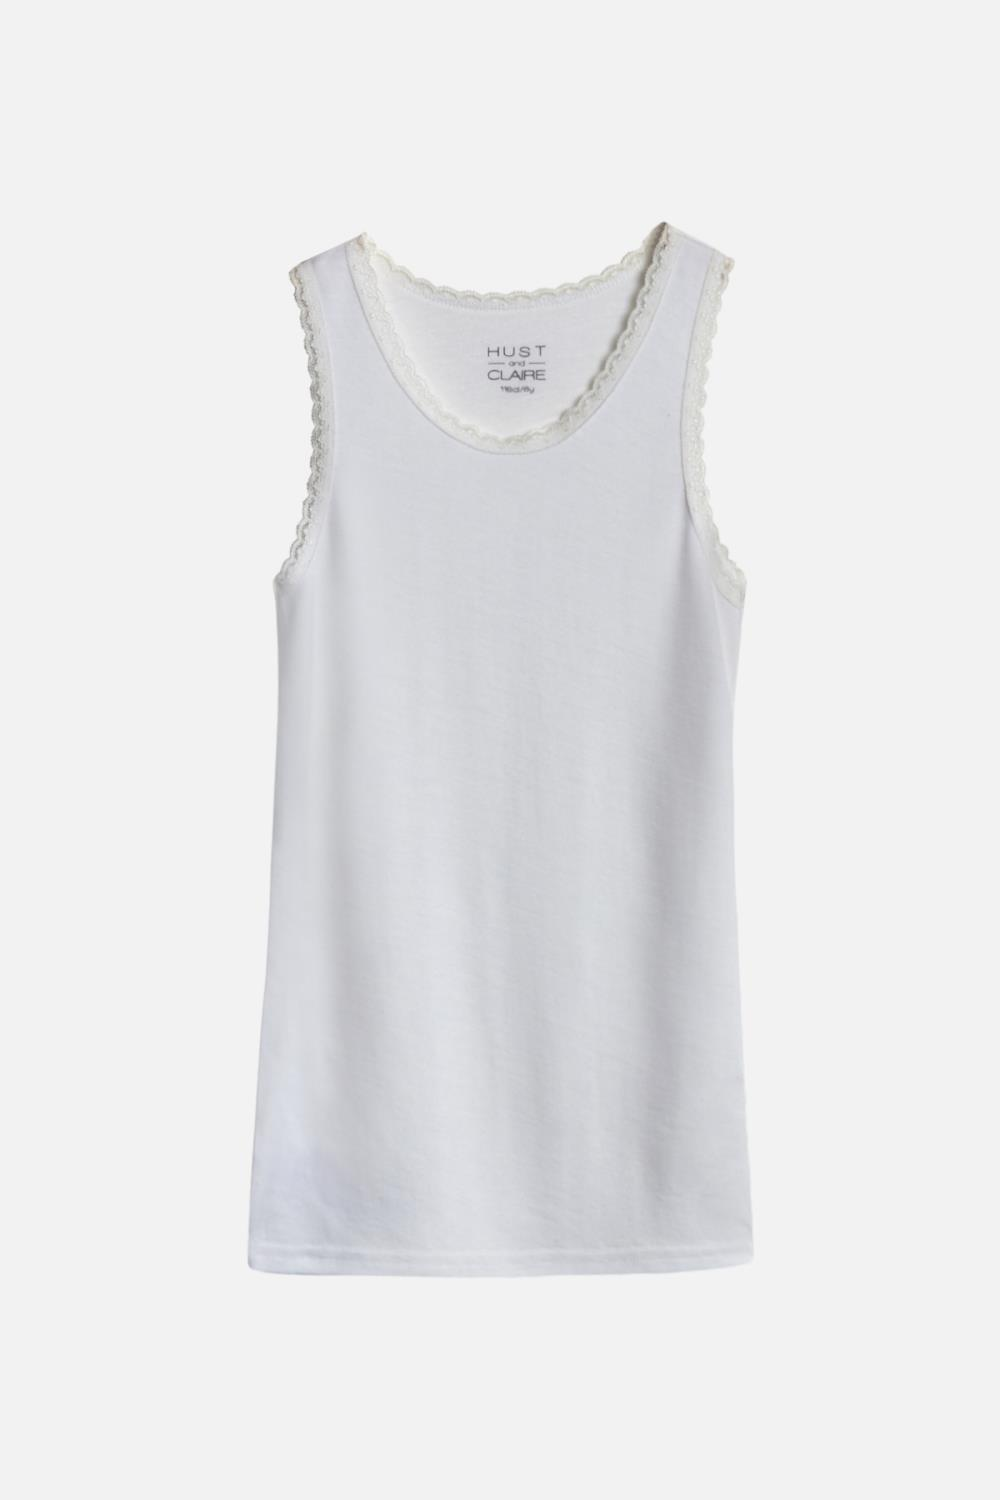 Hust and Claire - Singlet Faith, Off white